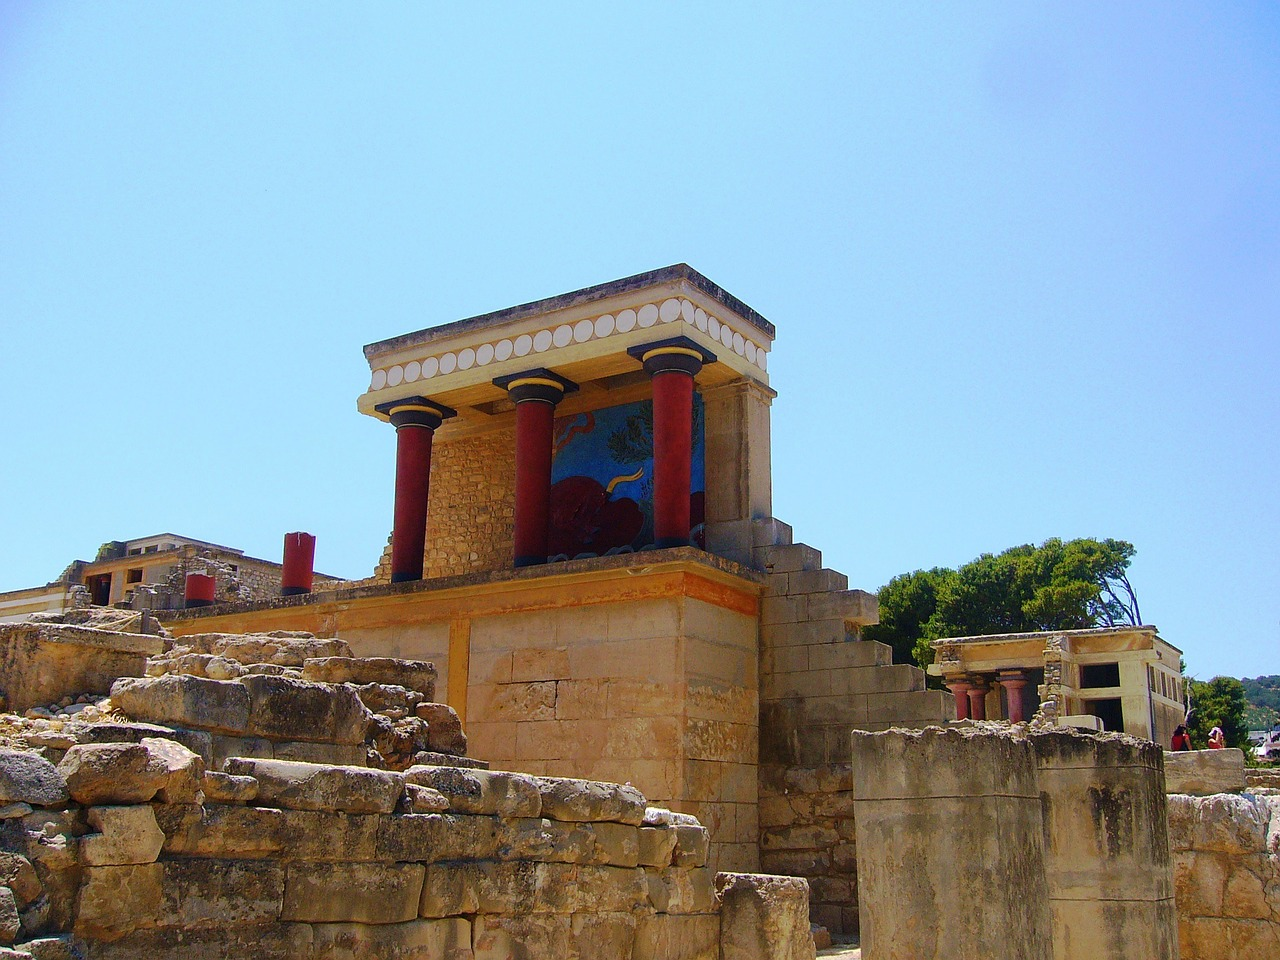 Greece tourist attractions - Knossos in Crete